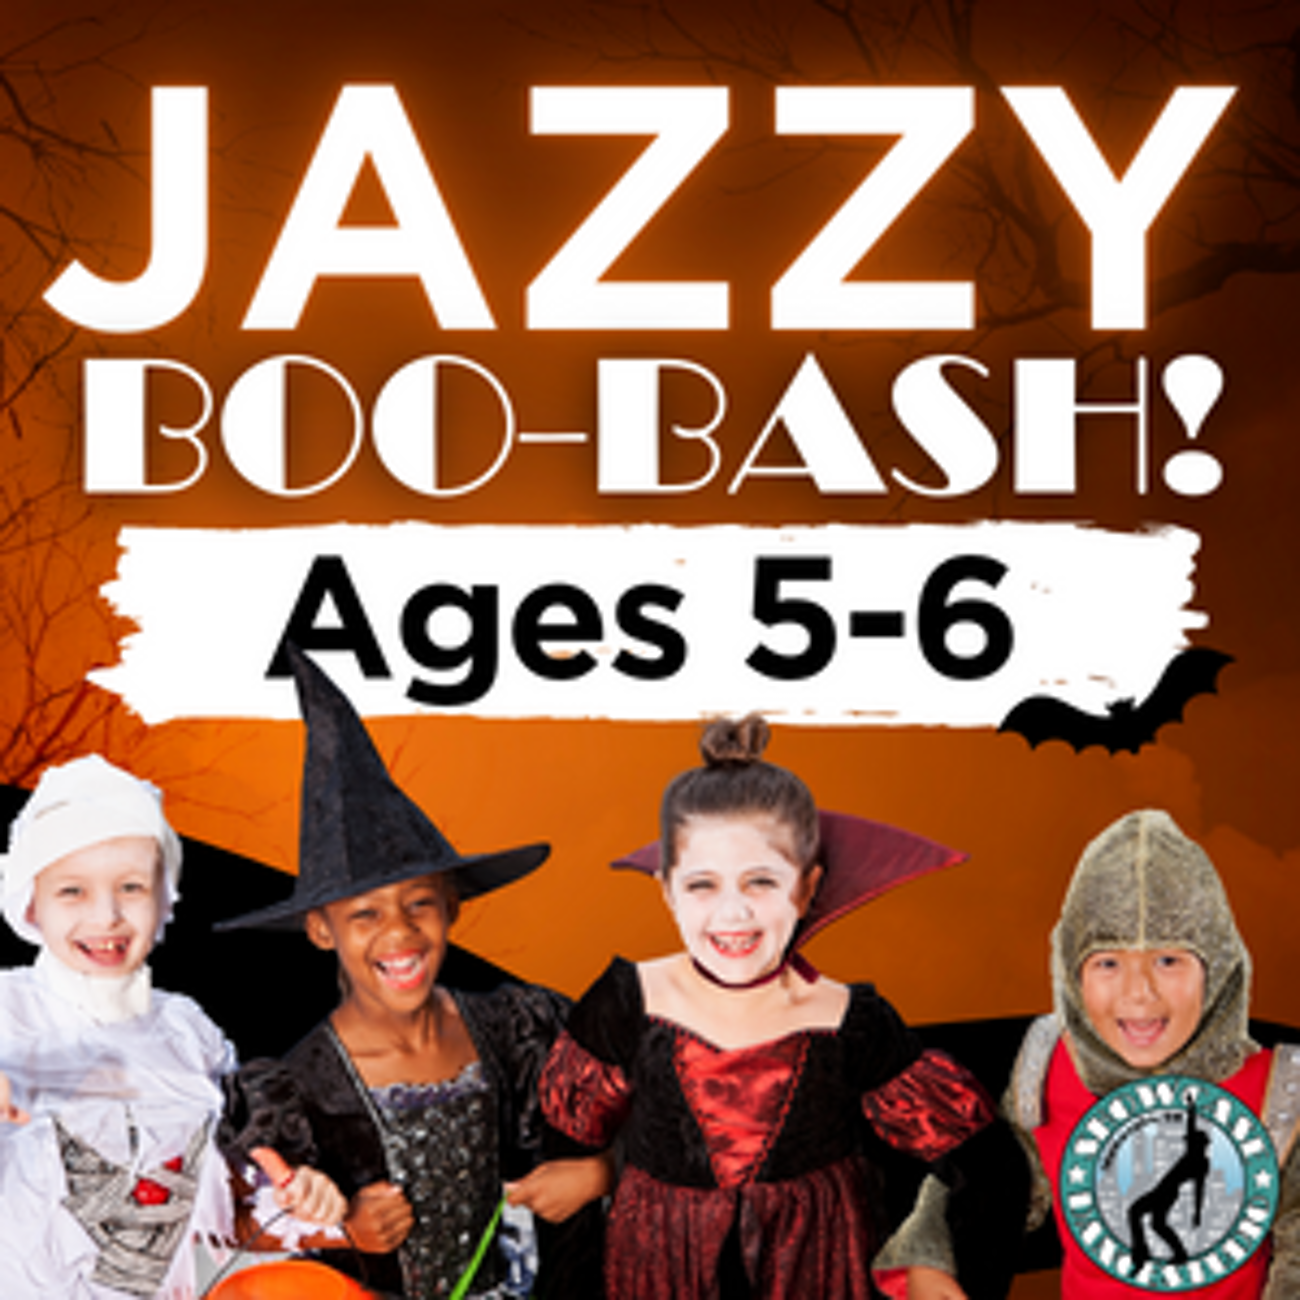 Jazzy Boo-Bash! Ages 5-6